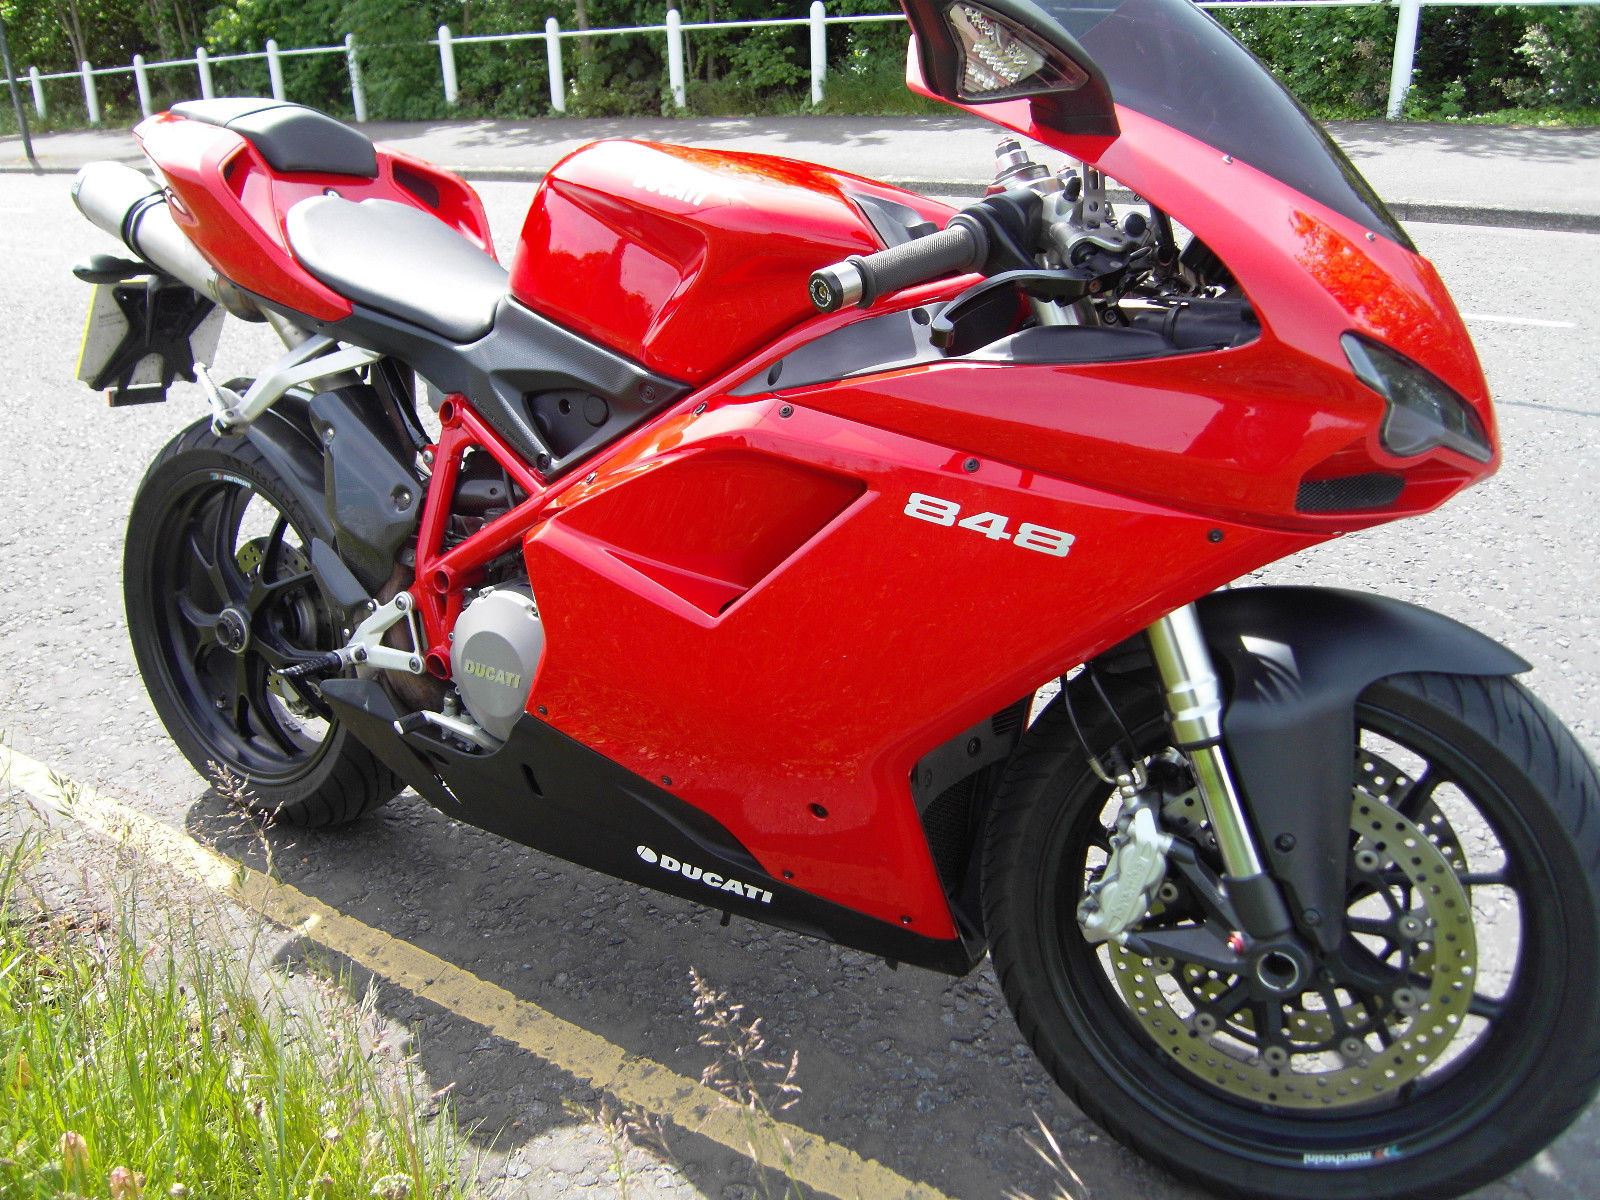 ducati 848 2008 red stunning fully serviced. Black Bedroom Furniture Sets. Home Design Ideas